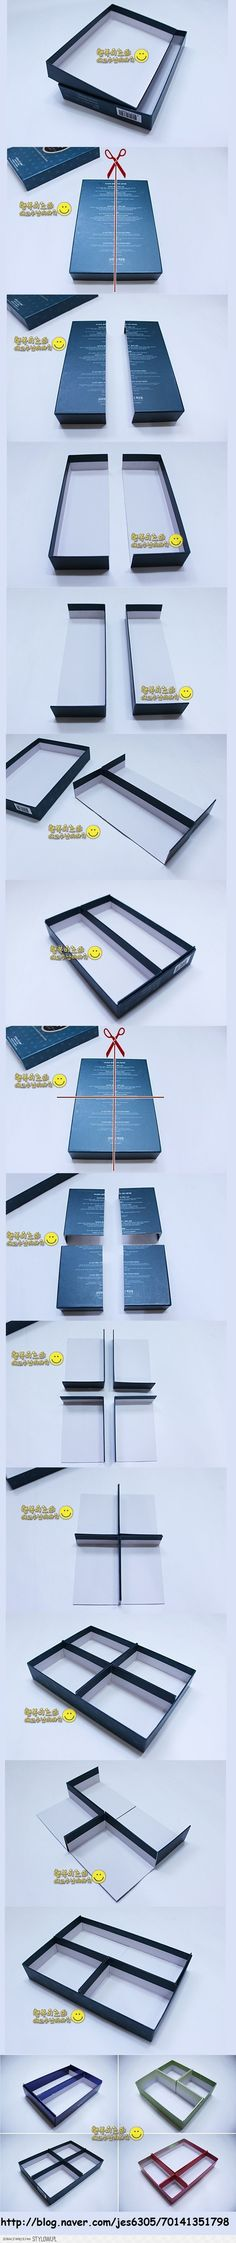 DIY Pictorial on how to take the top & bottom of a box & make sev diff types of organizational compartments! Clever!